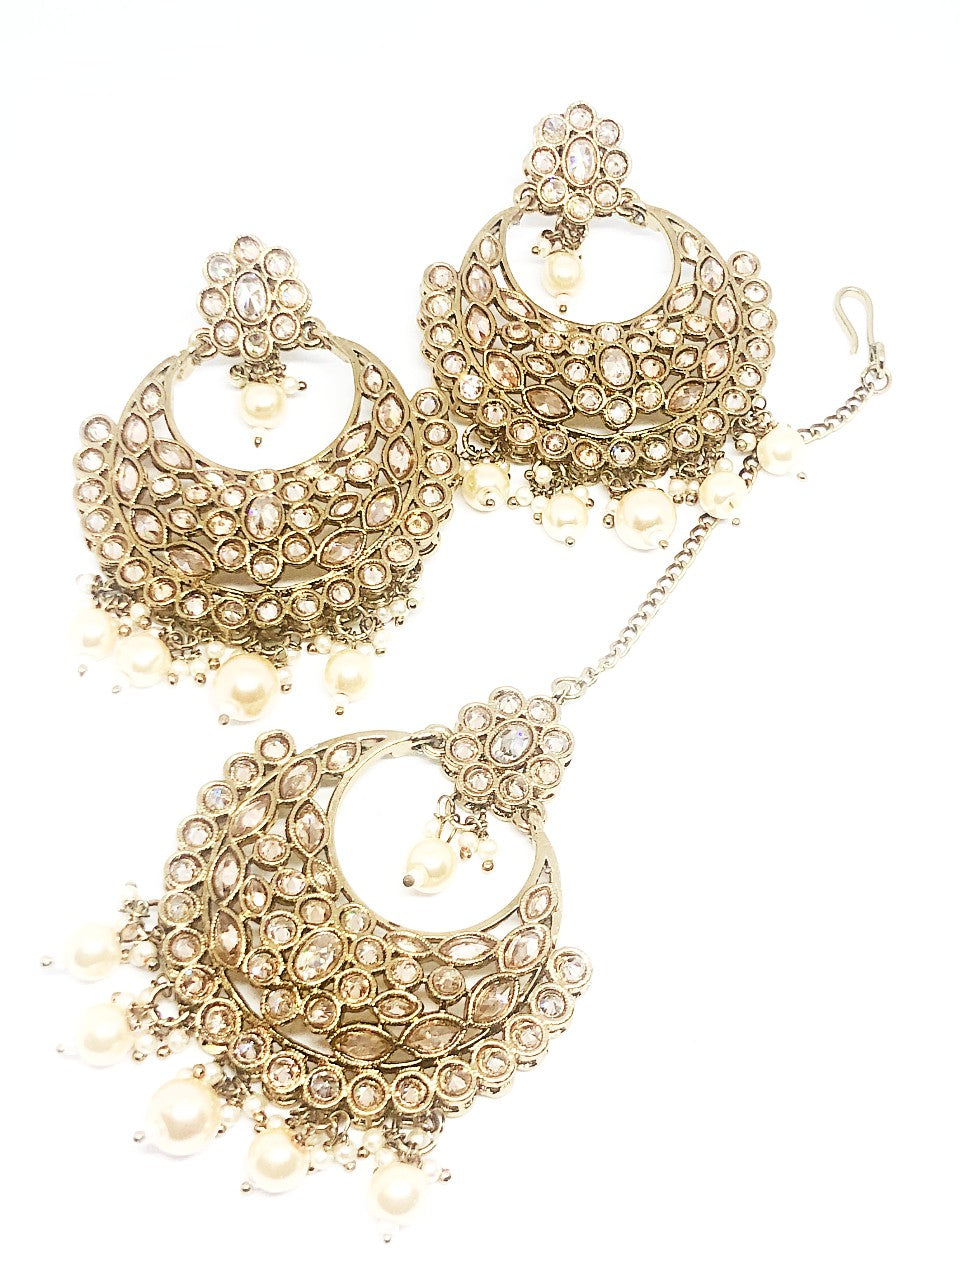 || KHOOB || Gold Tikka with Earrings with Champagne Stones